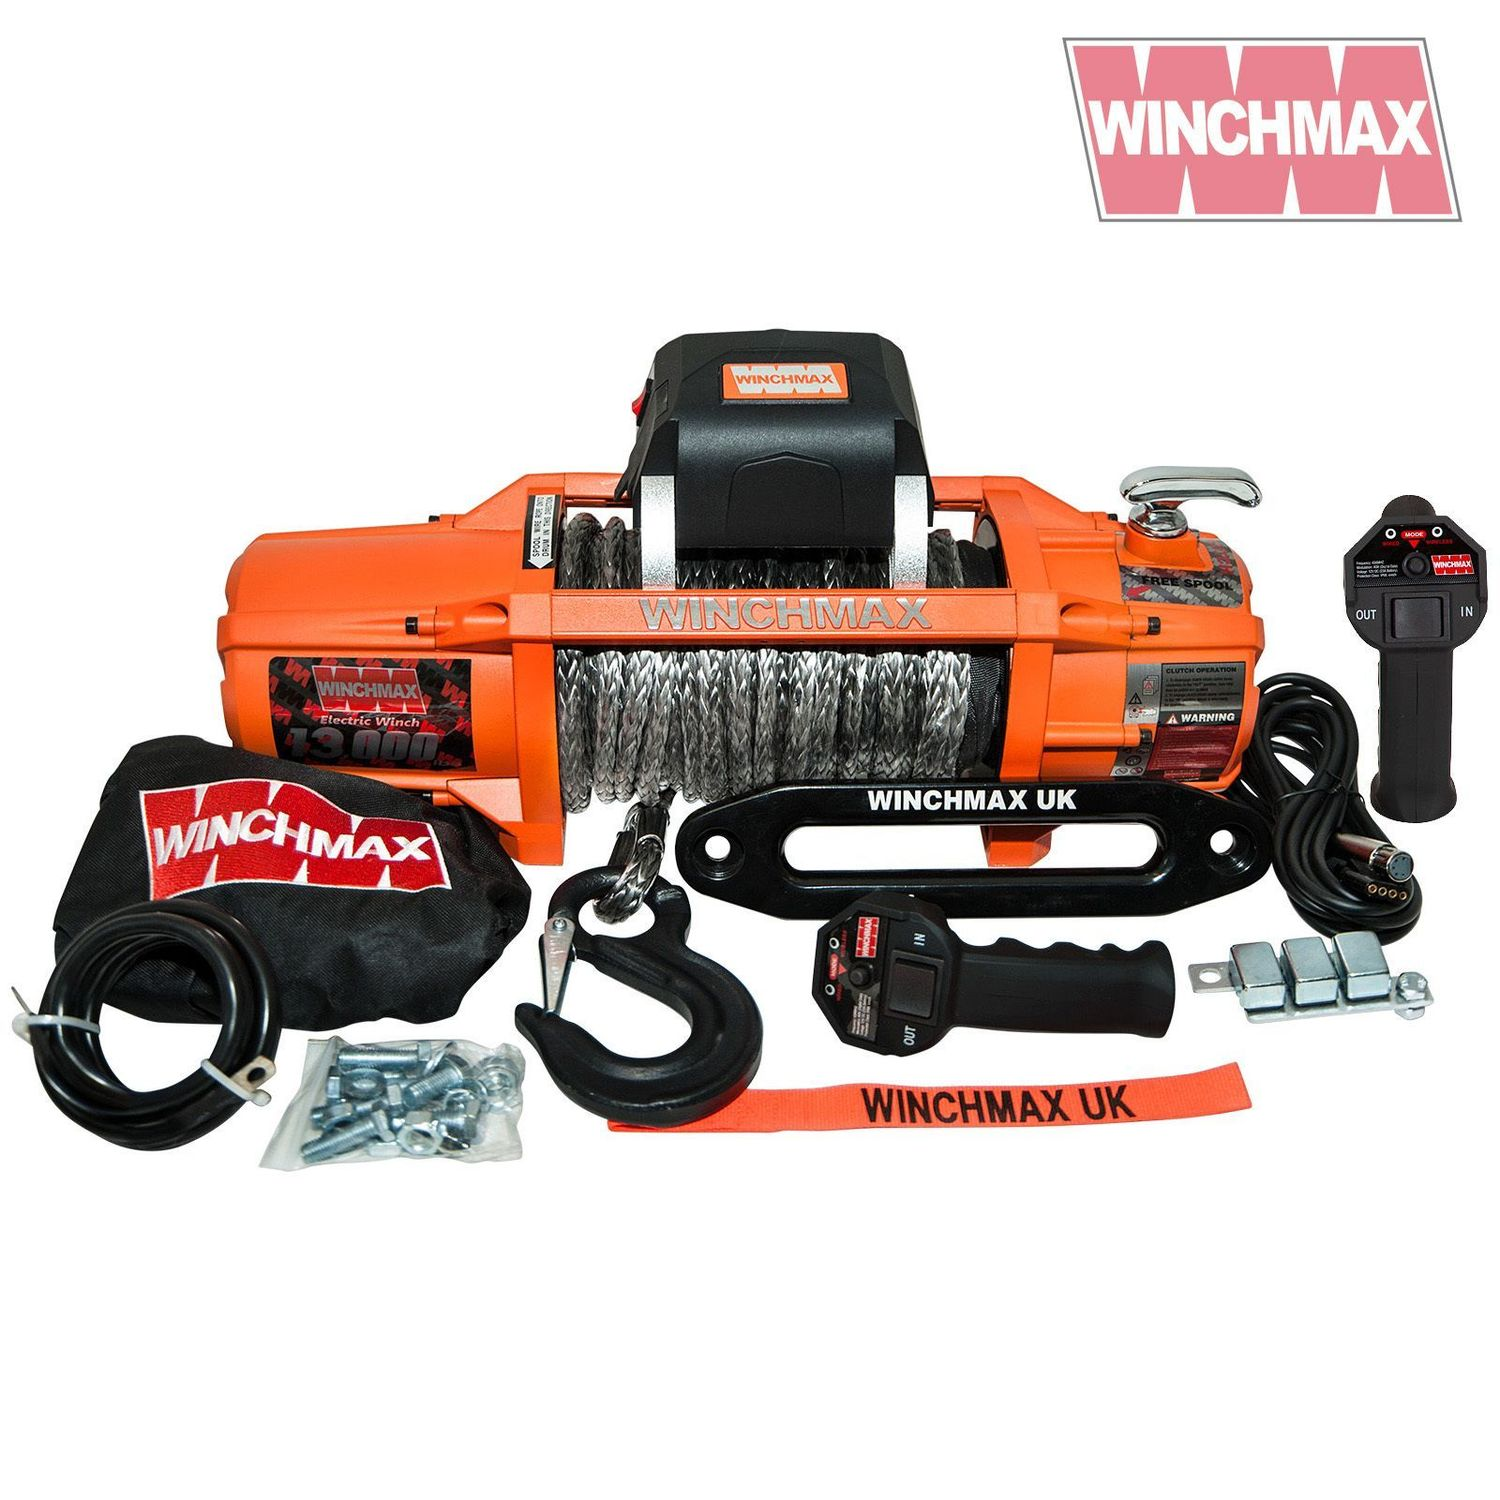 Treuil Winchmax COMPACT 6123 kg.